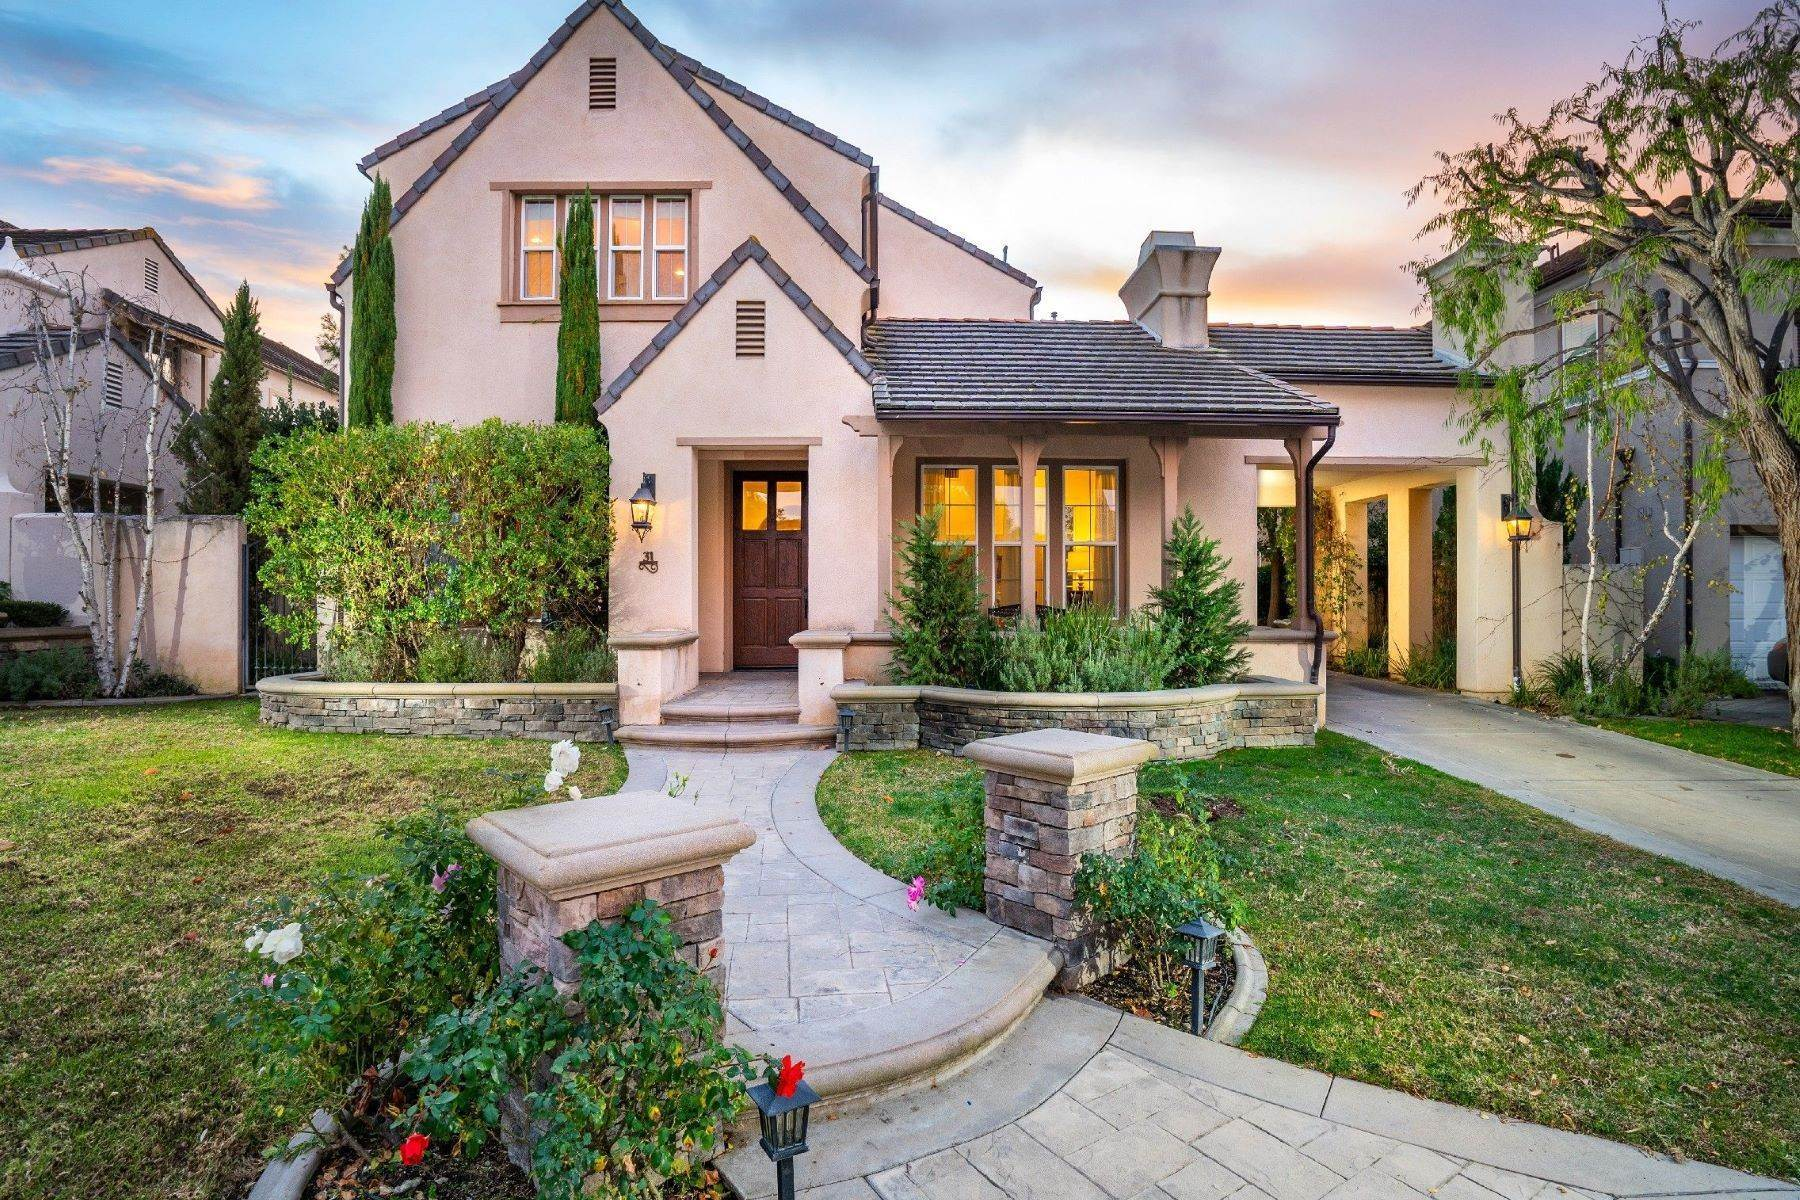 Single Family Homes for Sale at 31 Harcourt Newport Beach, California 92657 United States